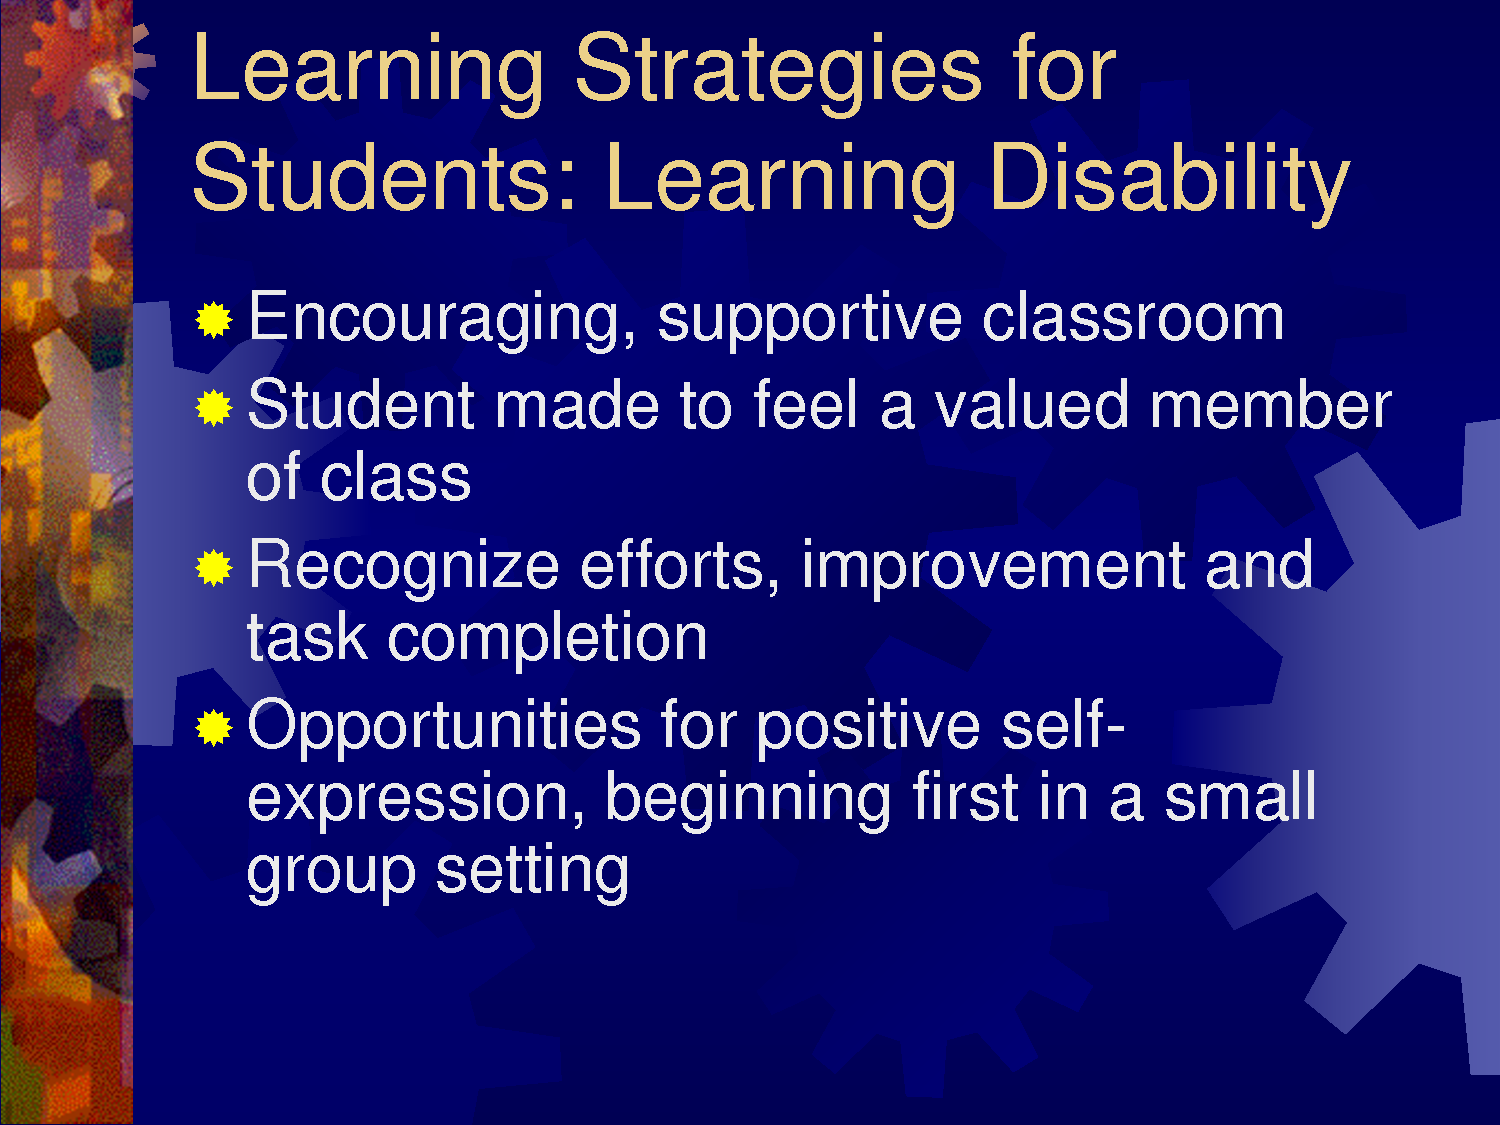 quotes about students with disabilities quotesgram